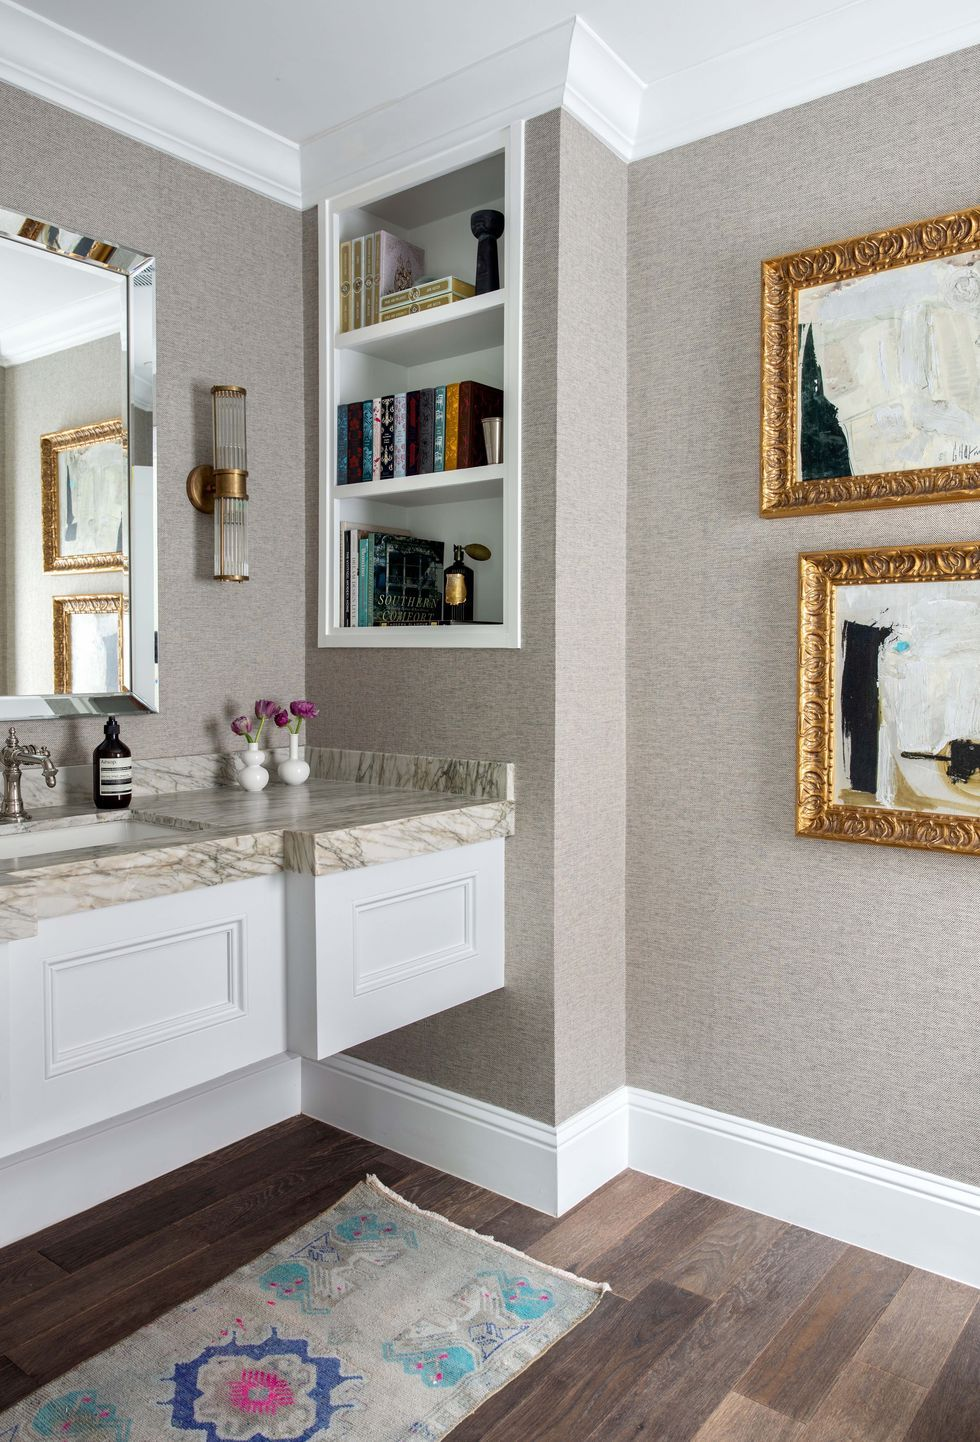 Small Bathrooms Design Ideas 2020 How To Decorate Small Bathroom